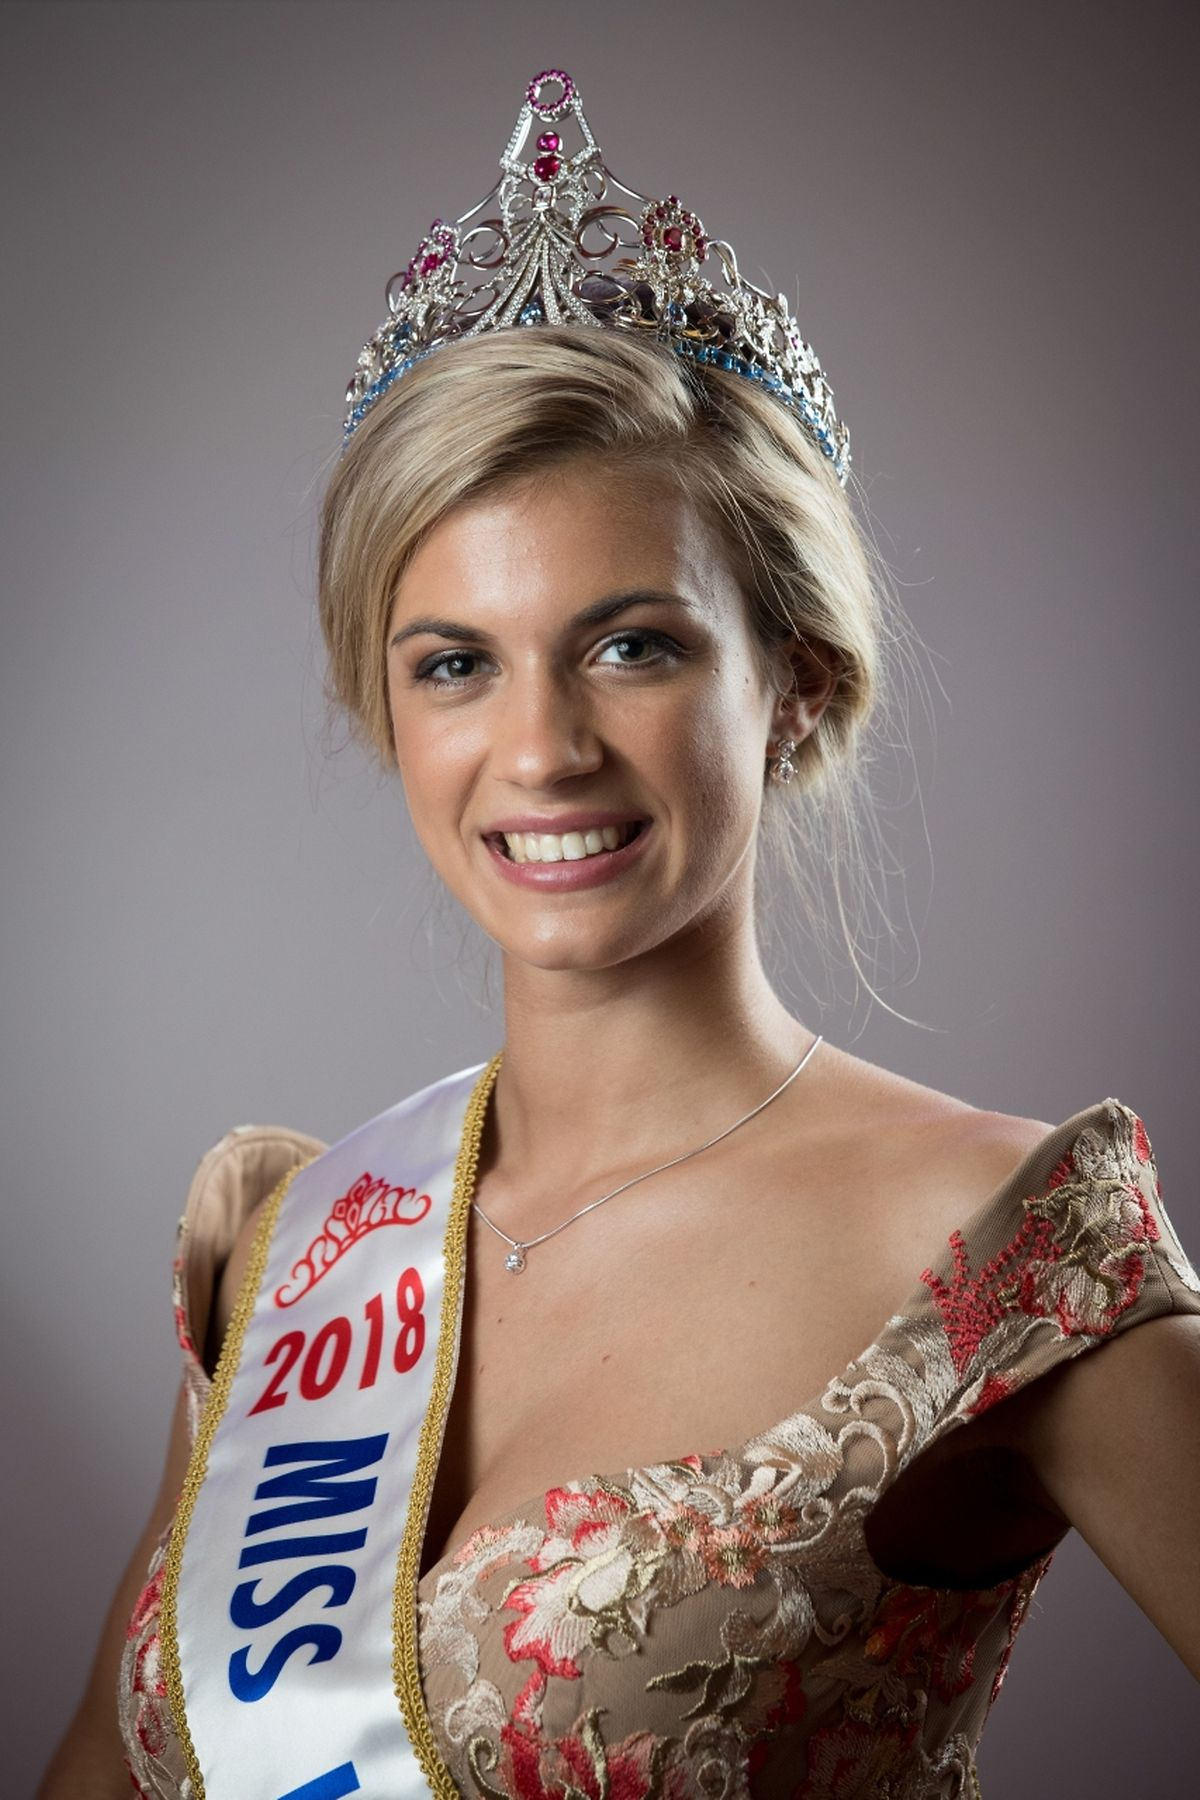 Miss LUXEMBOURG 2018: Kelly Nilles  - Will not compete  C47d6d14e4c6758434d80a088aa3d18e5ab81e3c